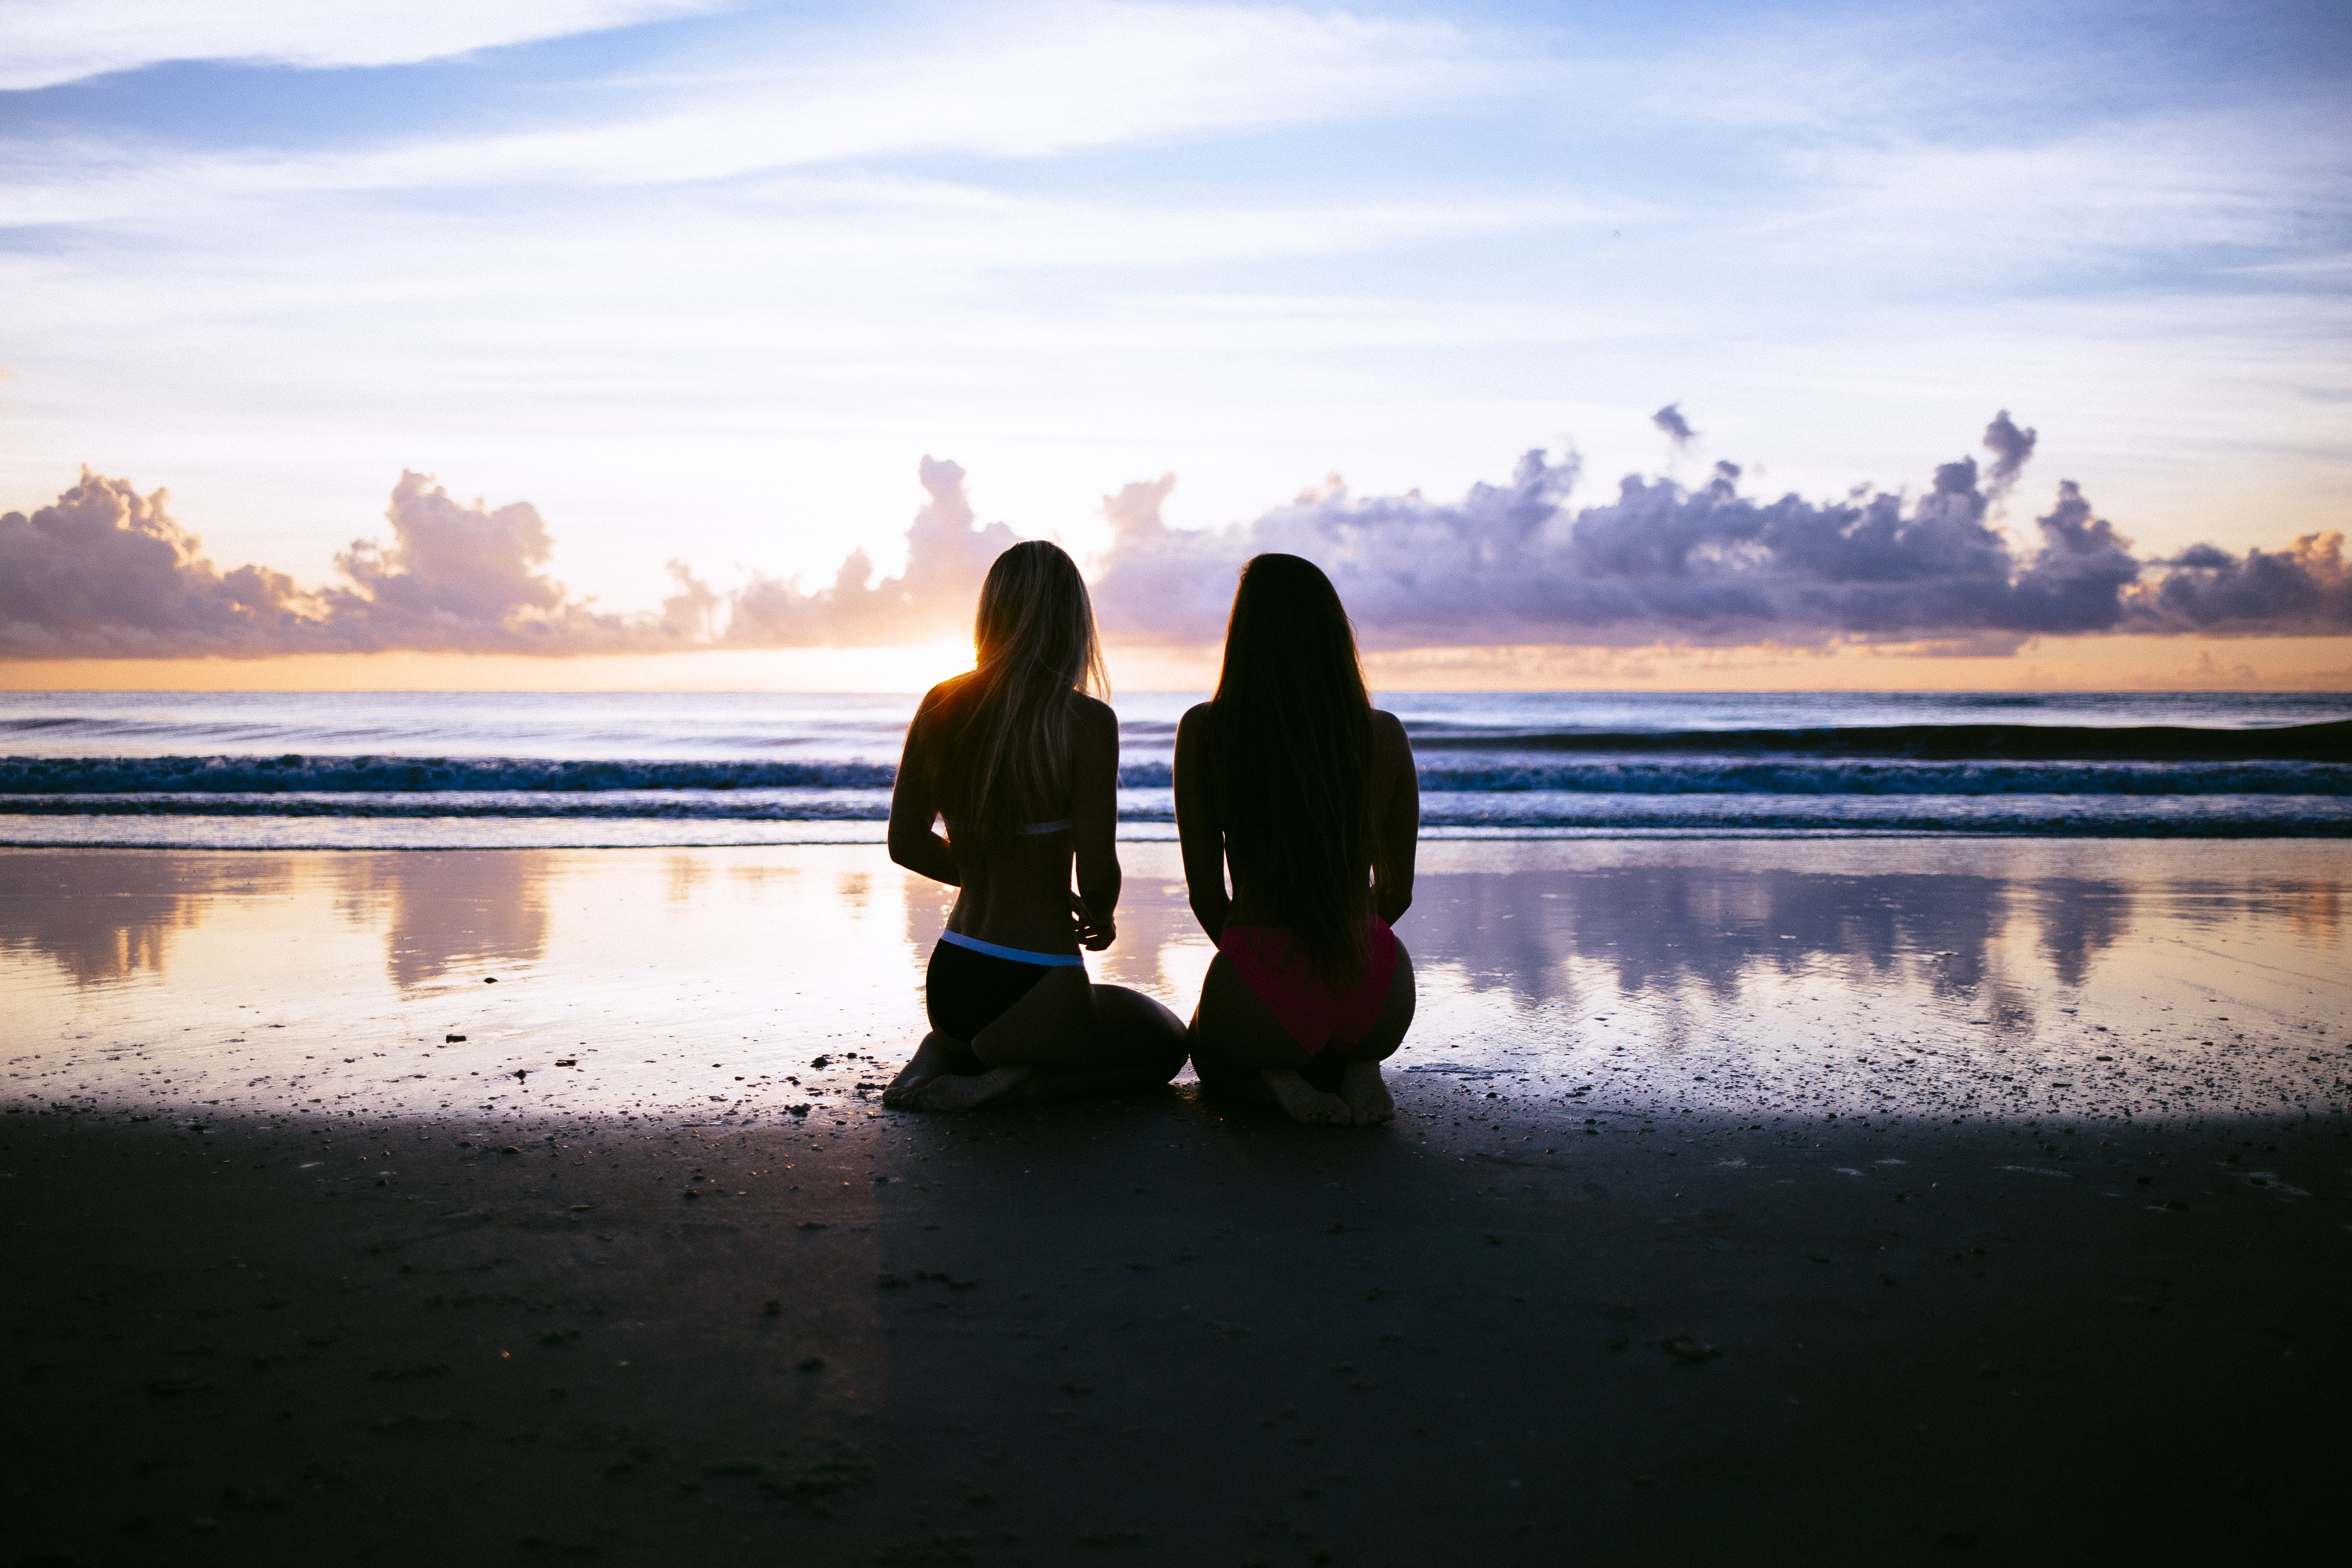 A dim shot of two women in bikini kneeling on a wet beach and admiring the sunset